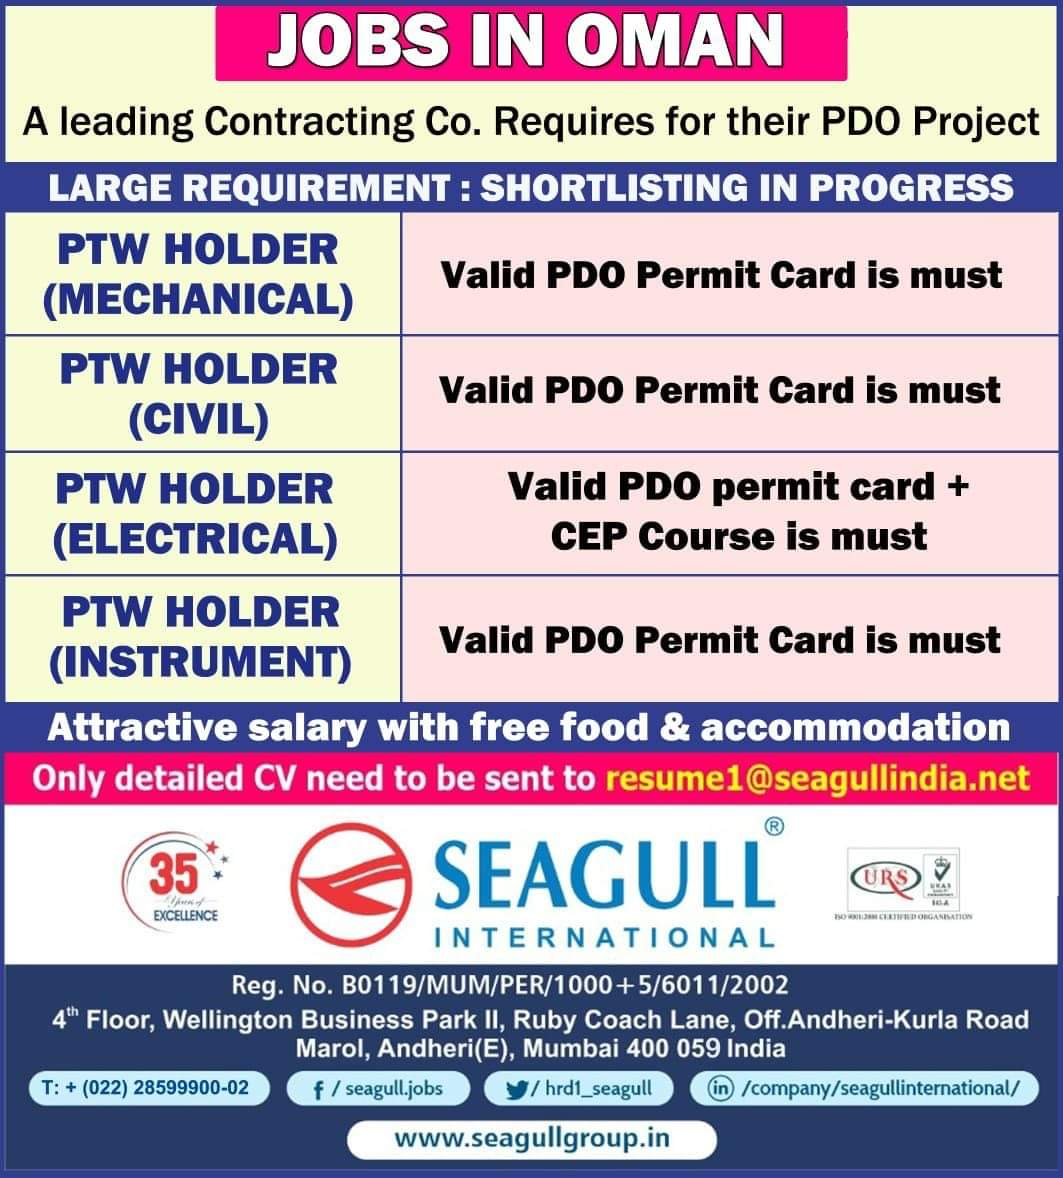 REQUIREMENT FOR A LEADING CONTRACTING COMPANY